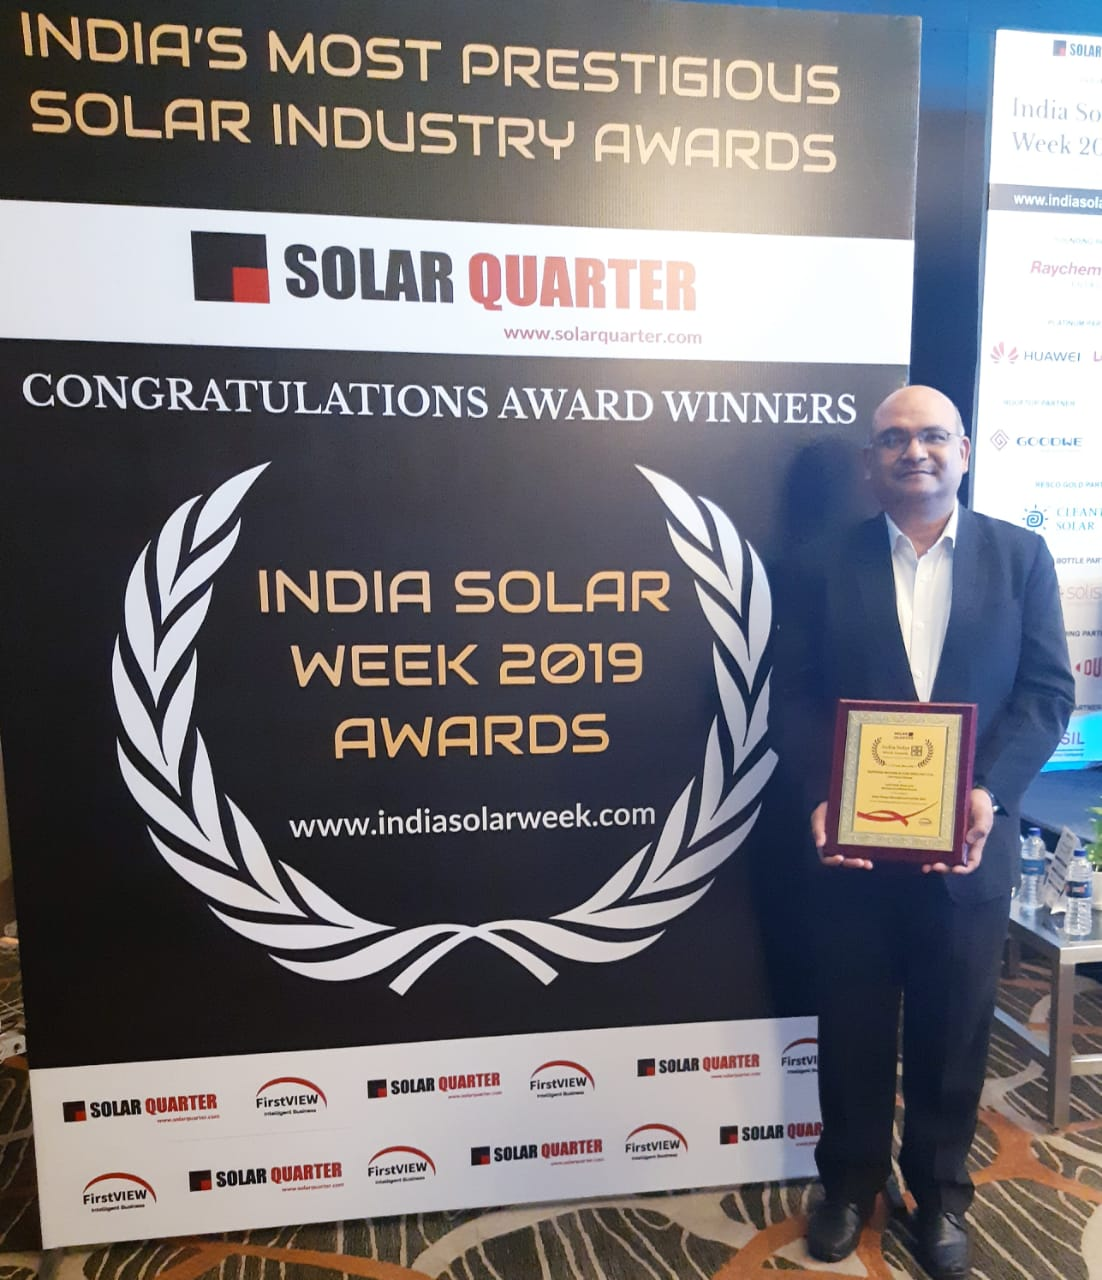 Rotomag wins Solar Pump Manufacturer of the year award